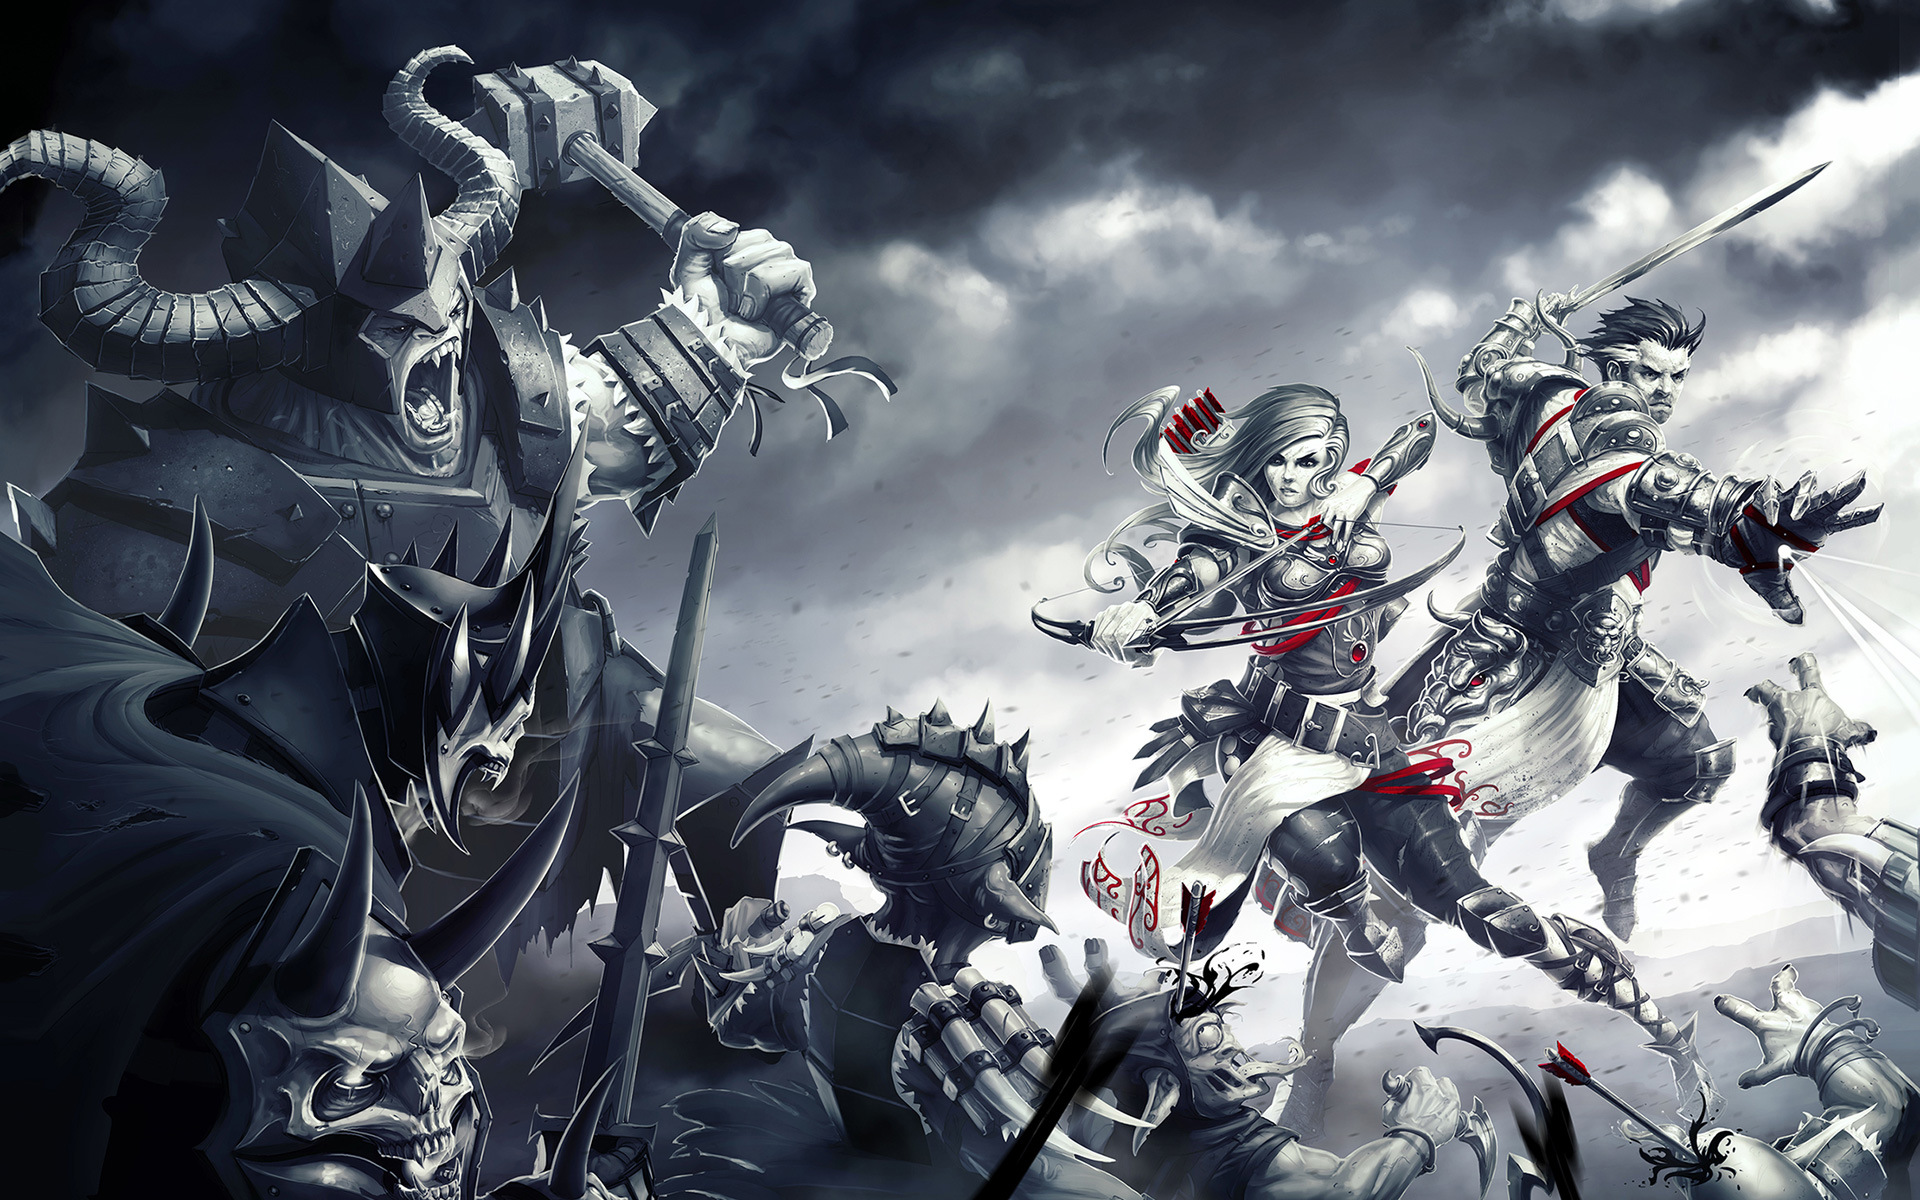 divinity-original-sin-enhanced-edition-1920x1200.jpg